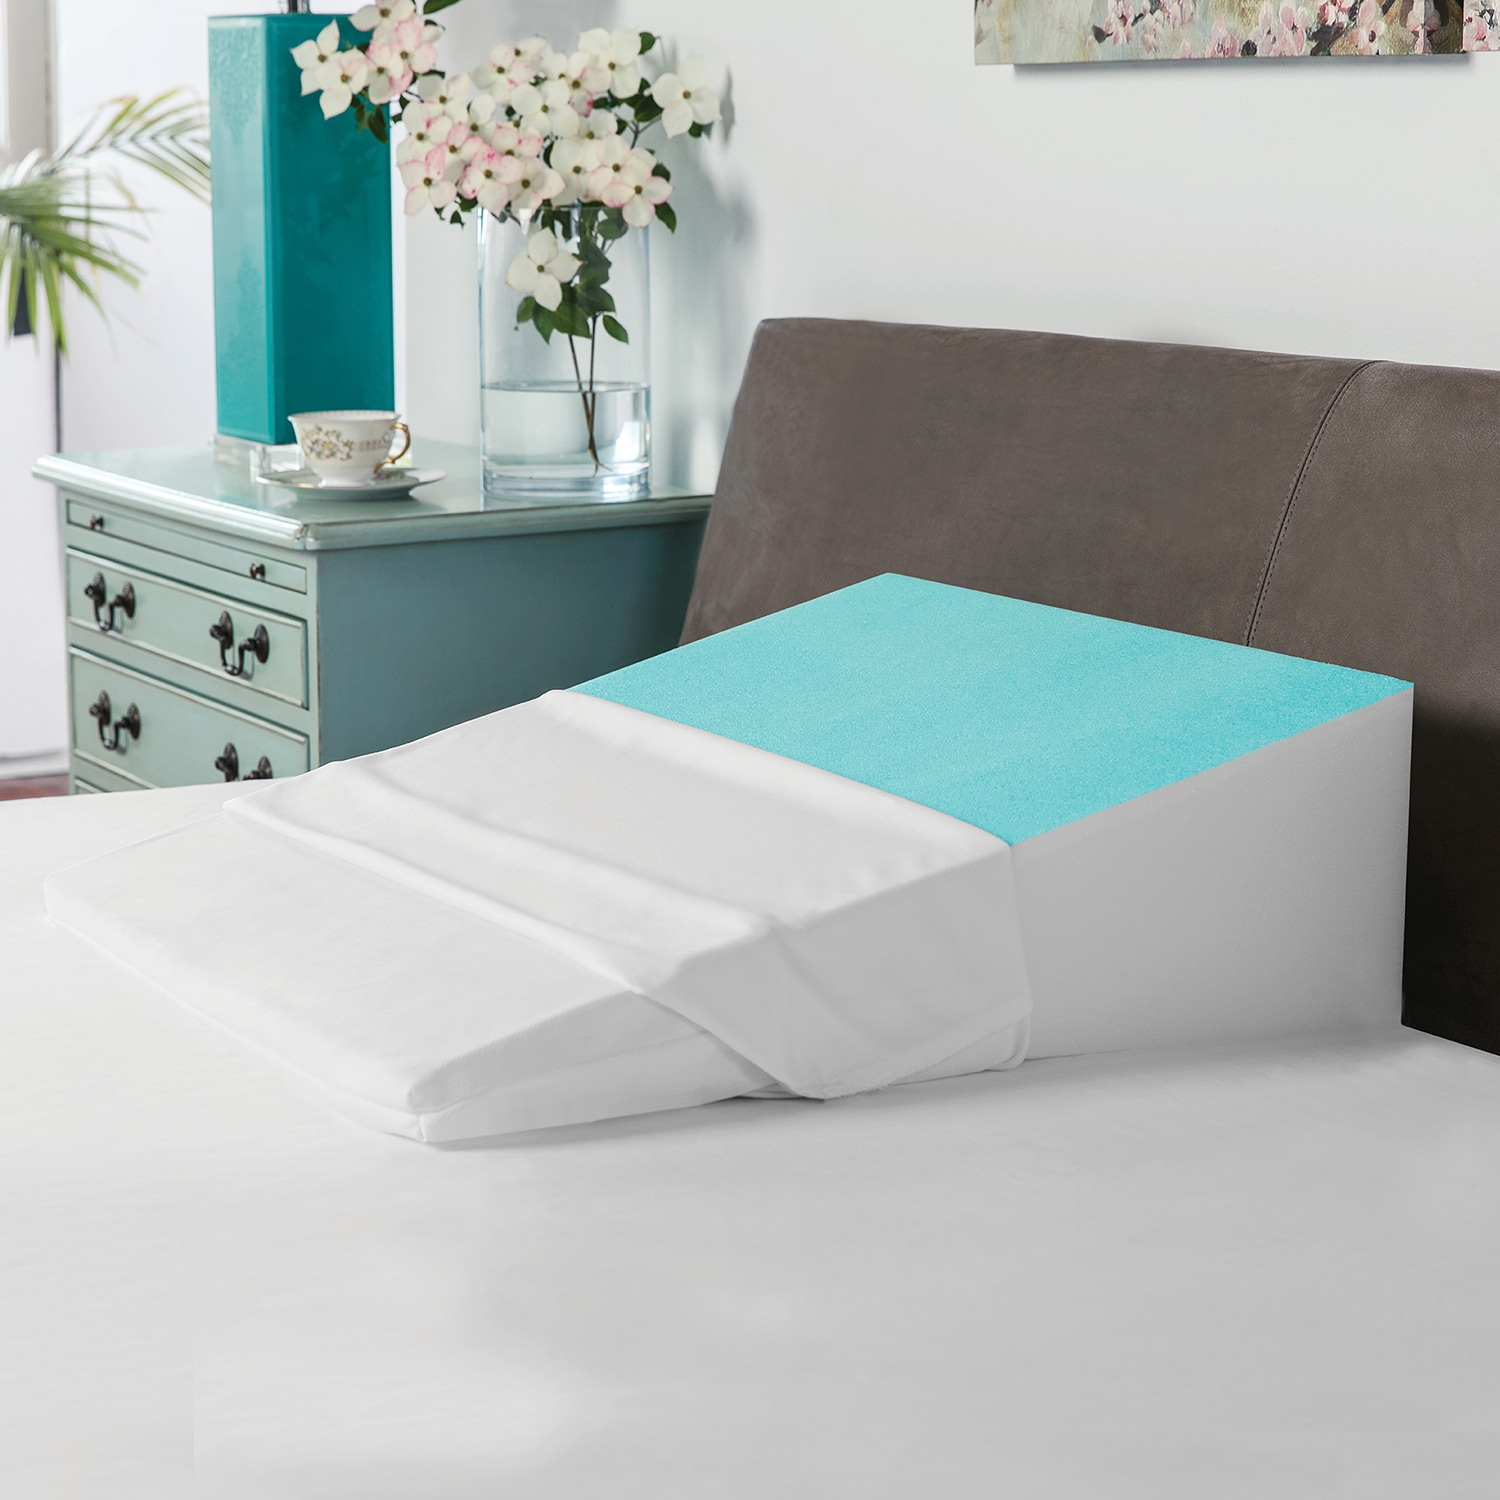 comfortable market for body plus relax mattress of beautiful vegas bed your photo wedge news pillow las x